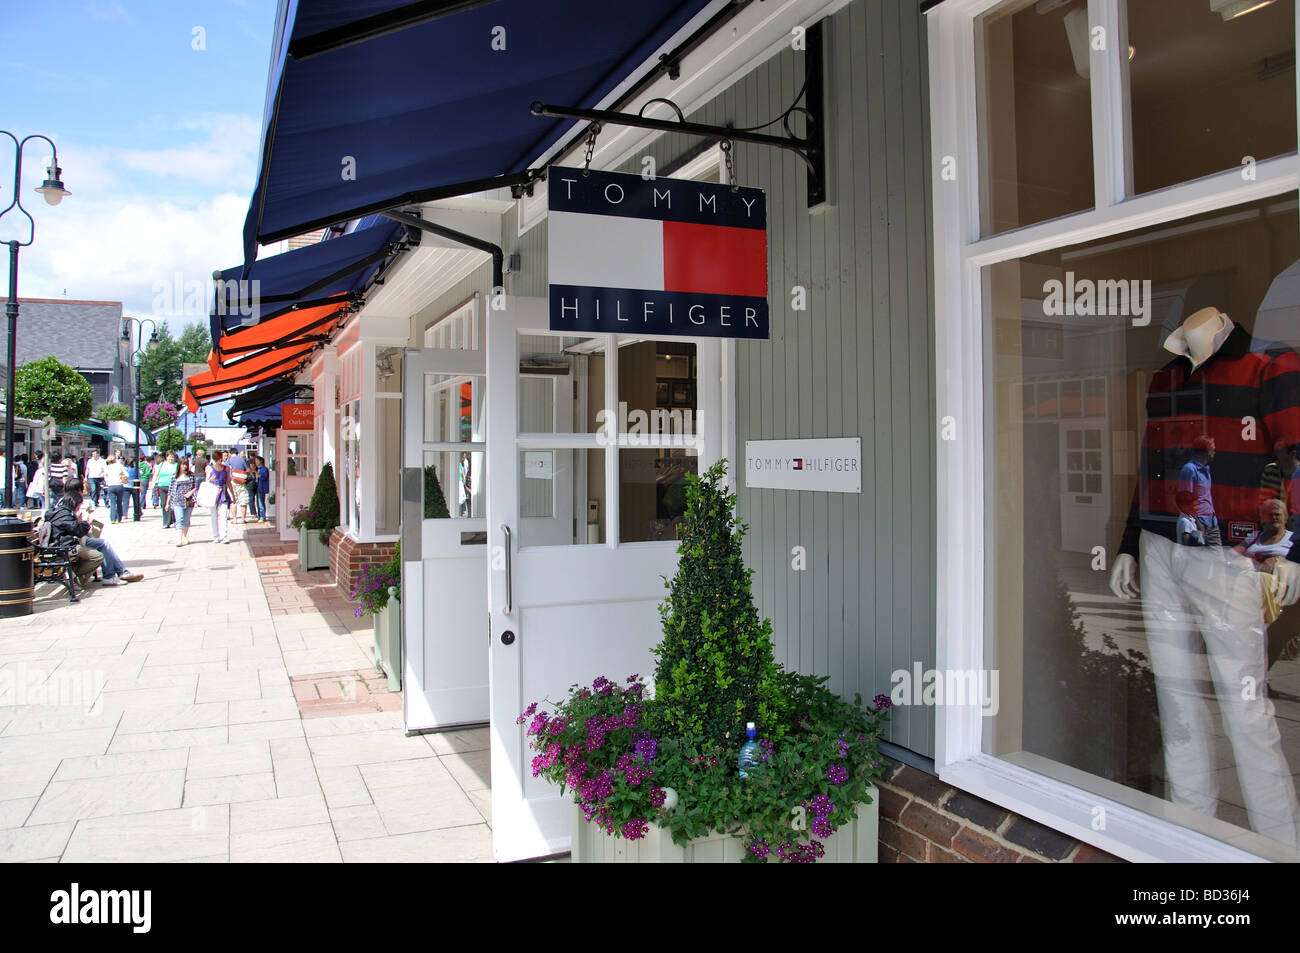 Tommy Hilfiger fashion store at Bicester Village Shopping Centre, Bicester, Oxfordshire, England, United Kingdom - Stock Image